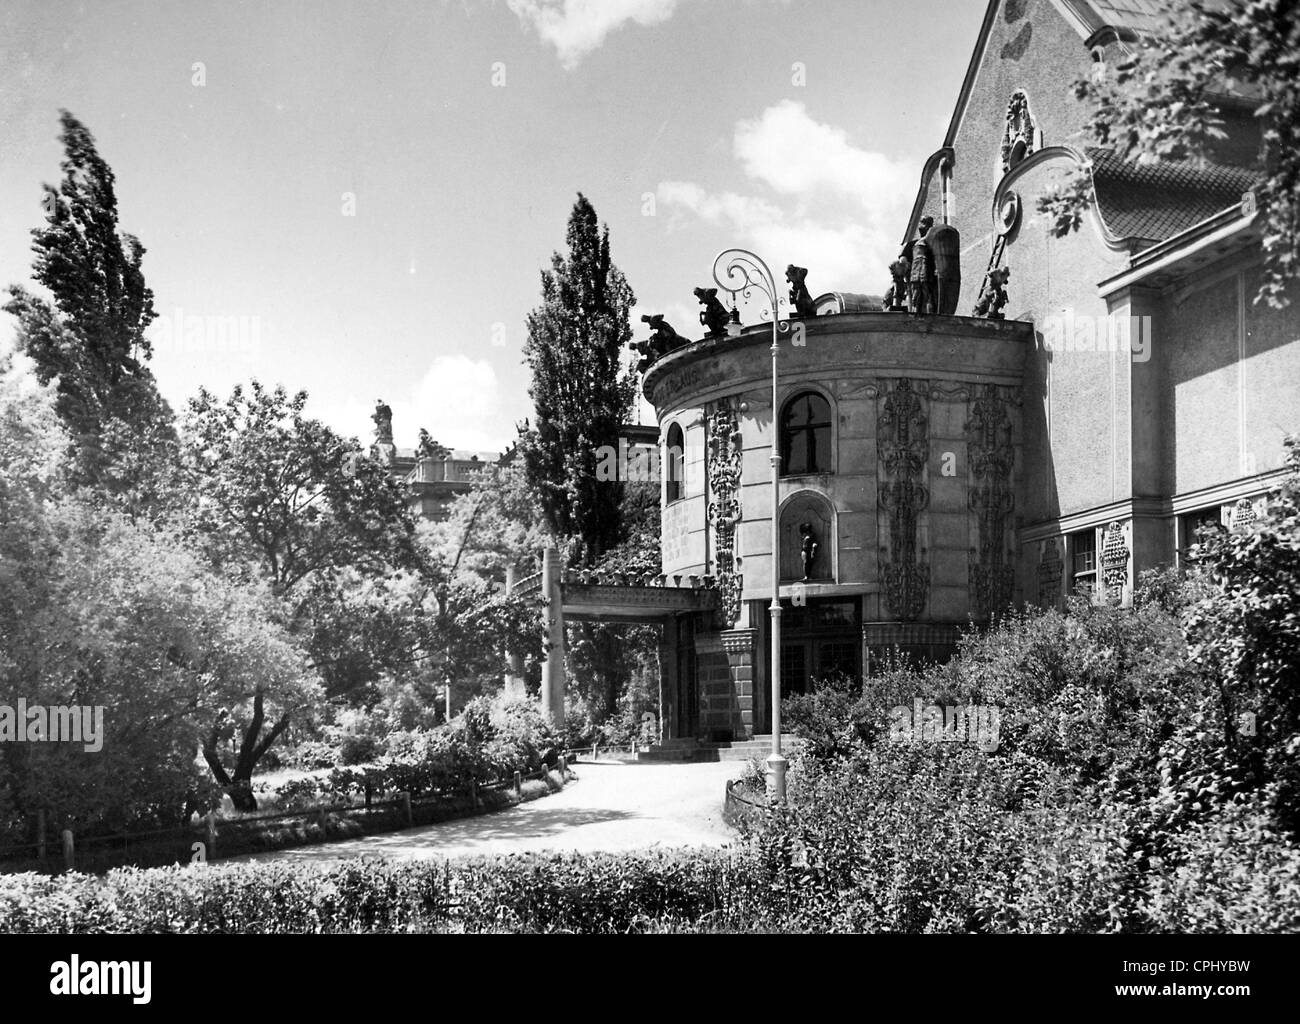 The House of Arts in Brno, 1940 - Stock Image